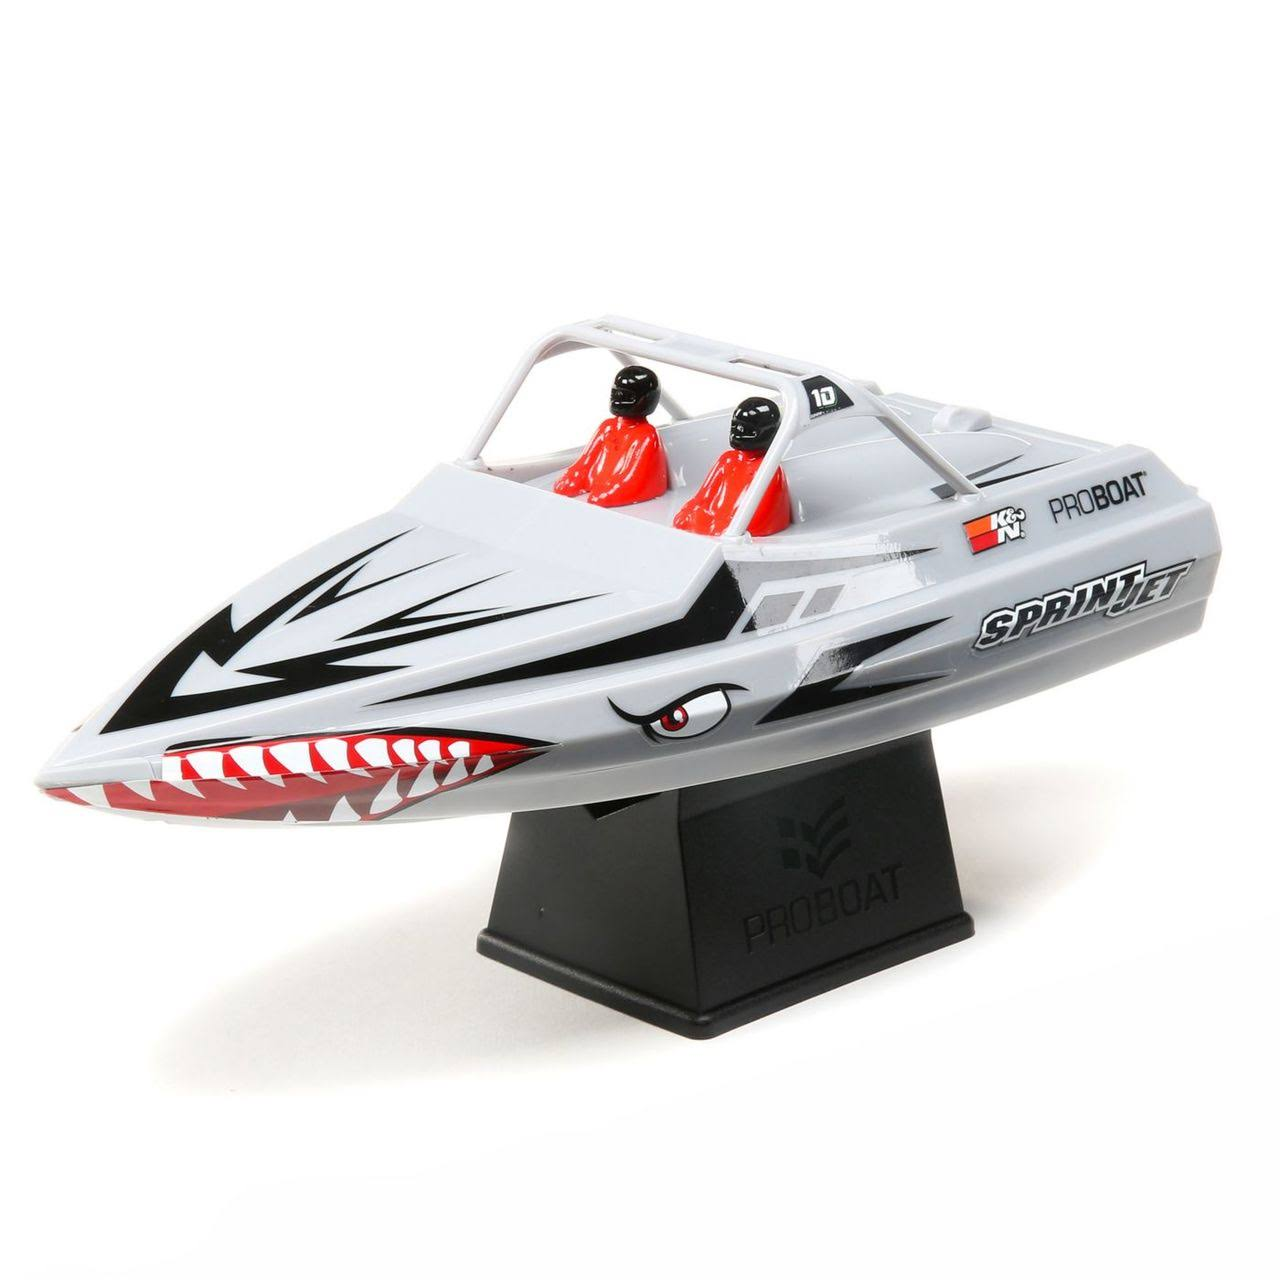 Proboat Radio Control Sprintjet Self Right Jet Boat - Silver, 9""